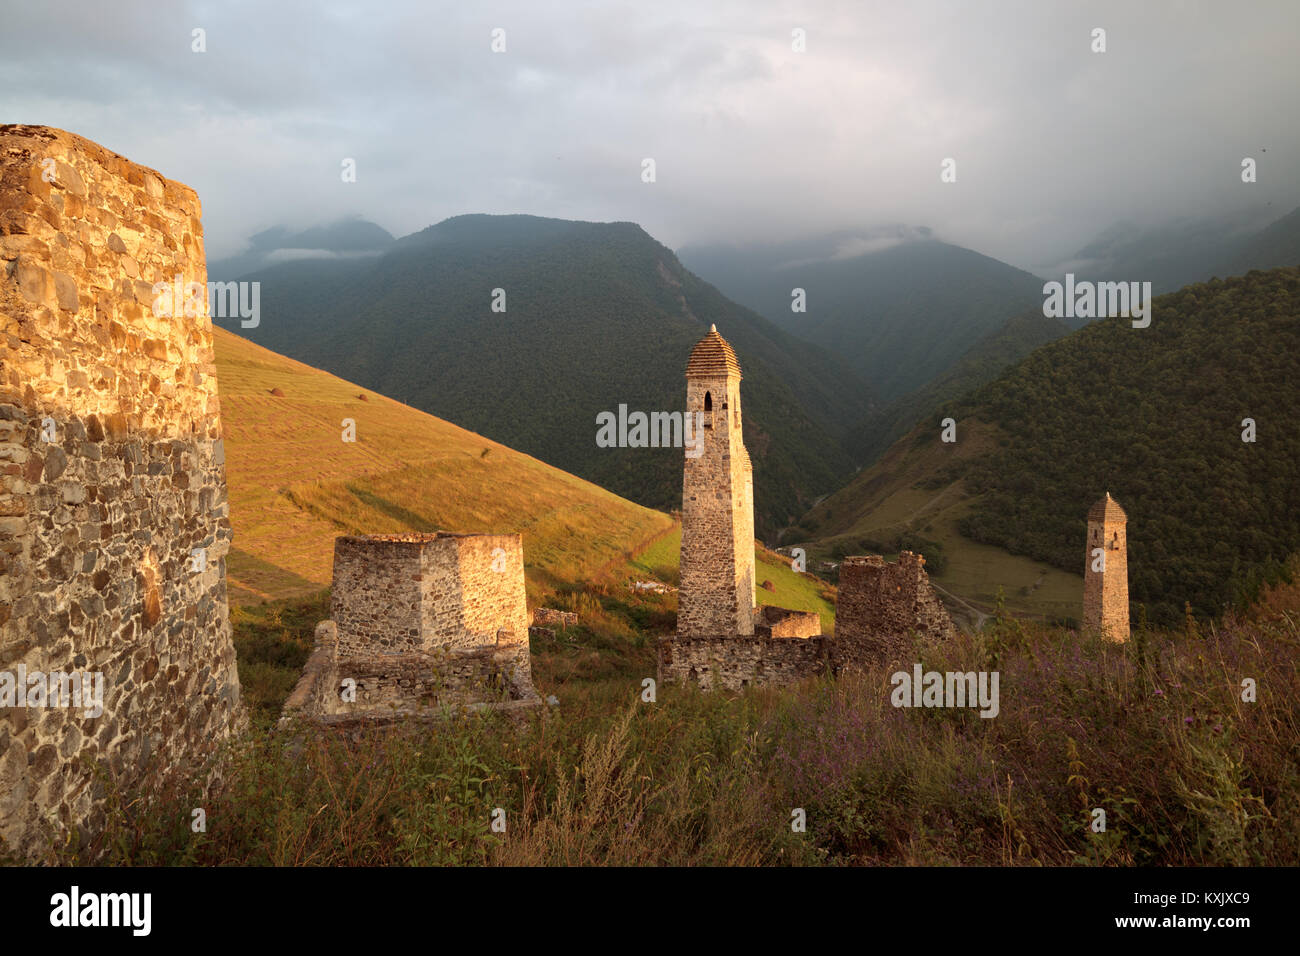 Golden sunset in Chechen/Ingush mountains, Erzi medieval architecture, North Caucasus - Stock Image